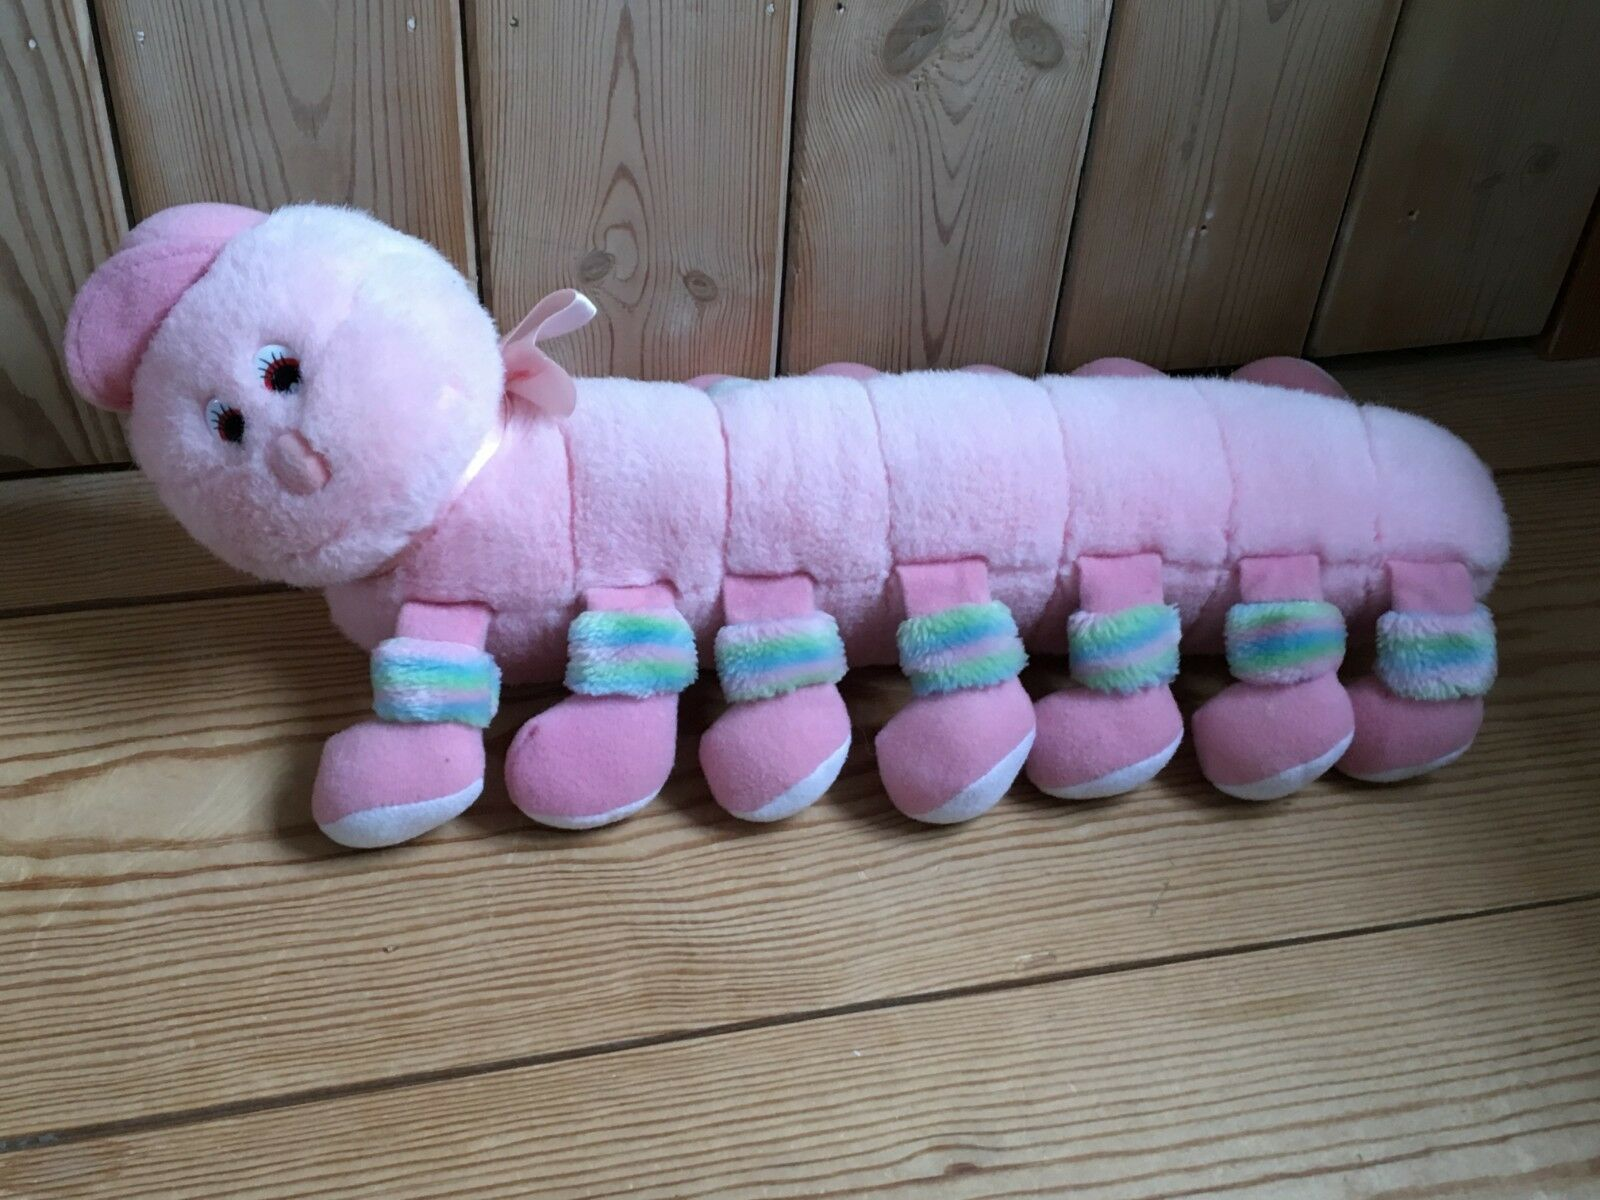 Vintage soft toy caterpillar with lullaby about 46cm long x 25cm wide